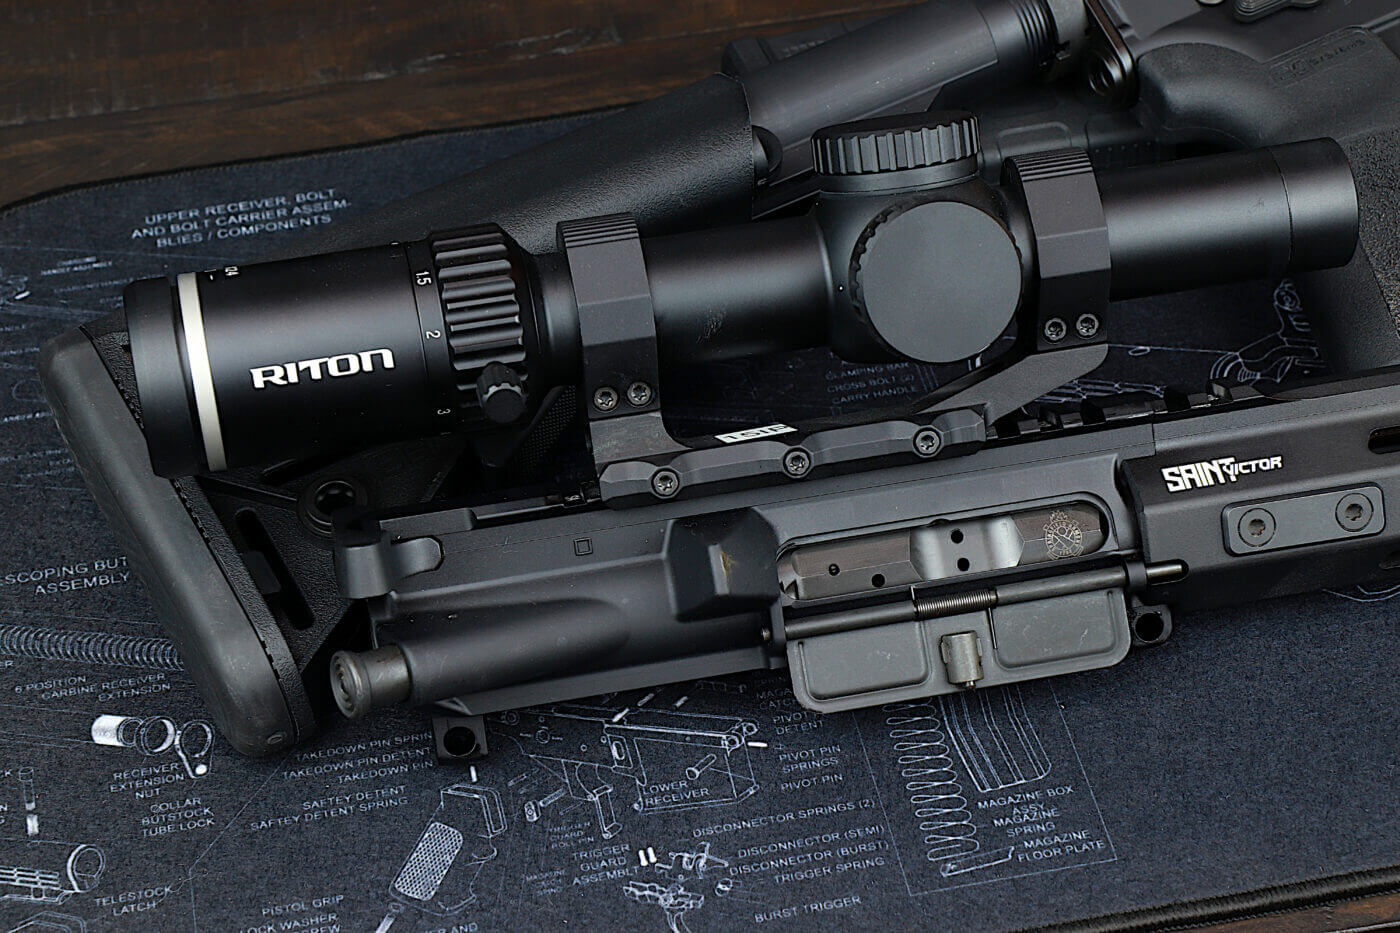 Second focal plane scope by Riton